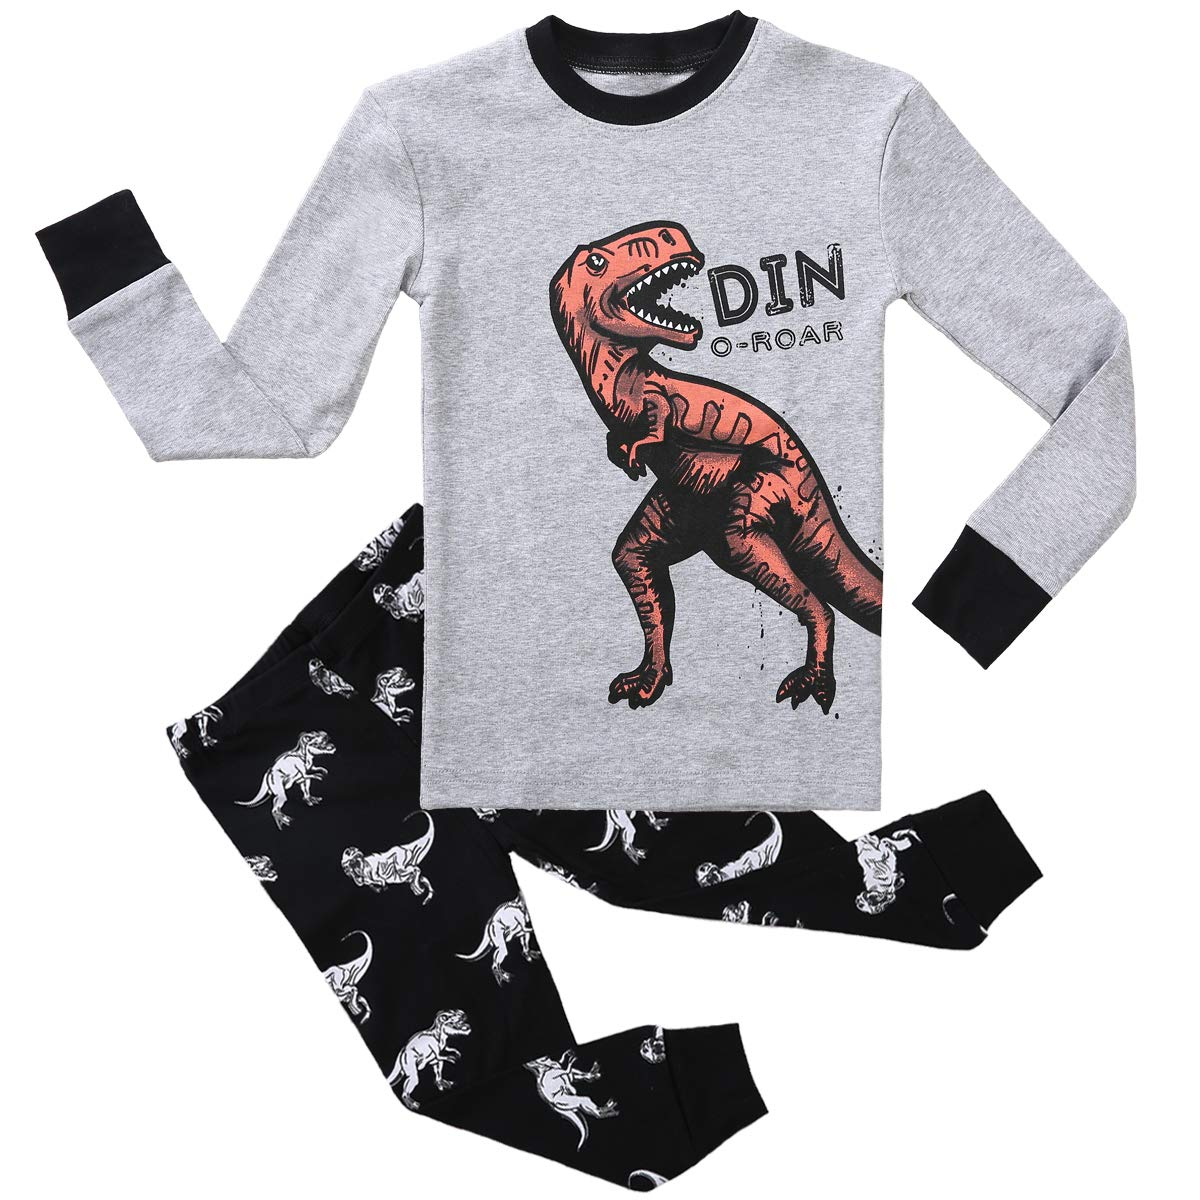 Boy Pajamas Set Long Sleeves Snug-Fit 2 Piece Kid PJS Sets 100% Cotton Toddler Sleepwear (Cute Dinosaur, 4T)